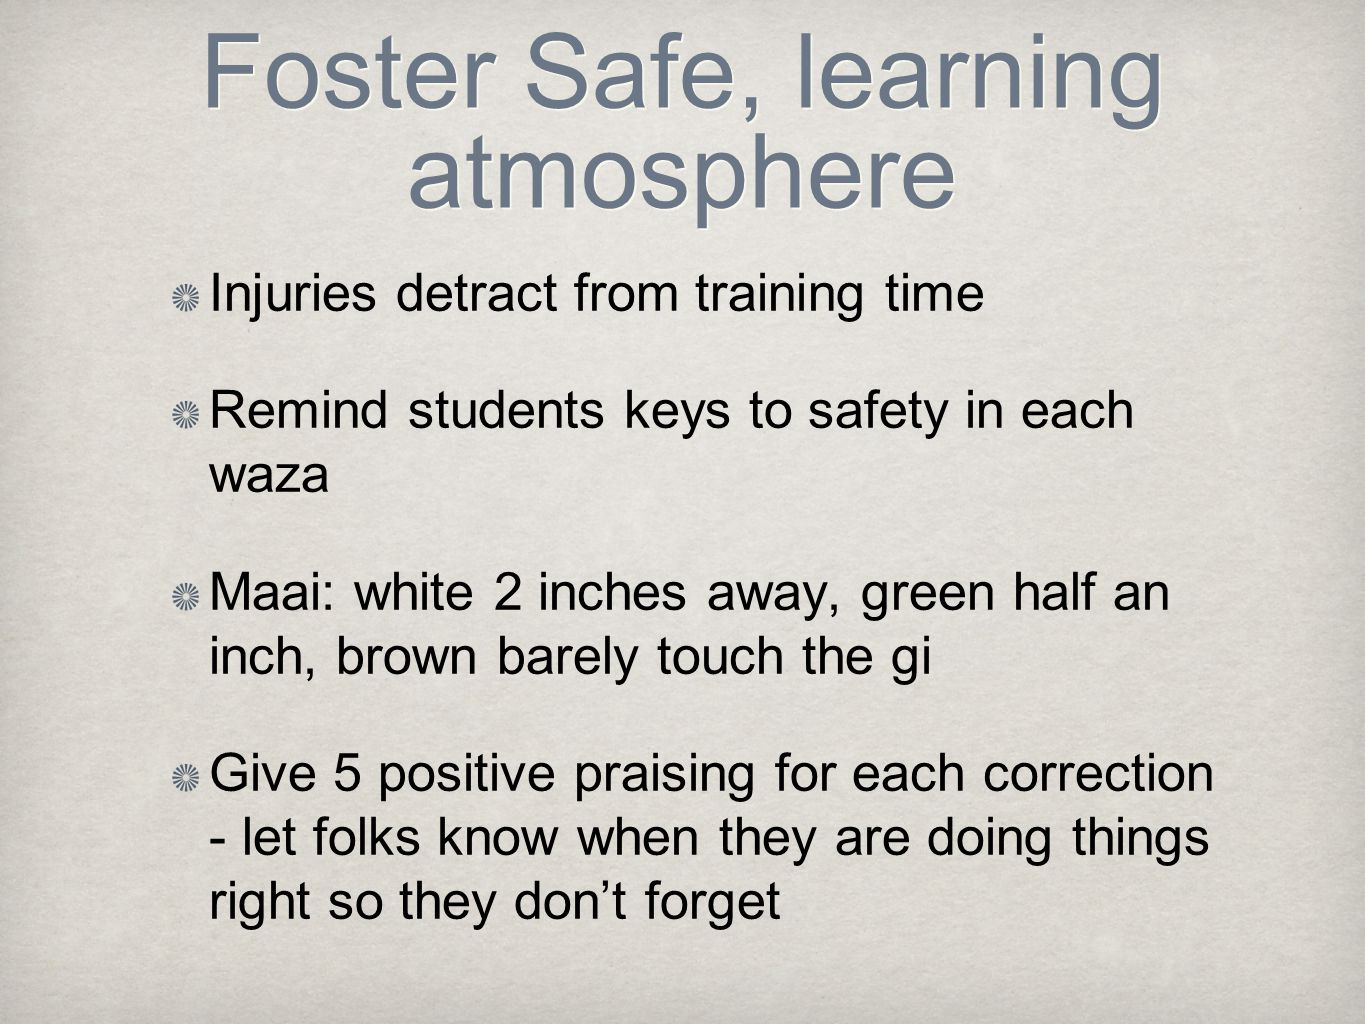 Foster Safe, learning atmosphere Injuries detract from training time Remind students keys to safety in each waza Maai: white 2 inches away, green half an inch, brown barely touch the gi Give 5 positive praising for each correction - let folks know when they are doing things right so they don't forget